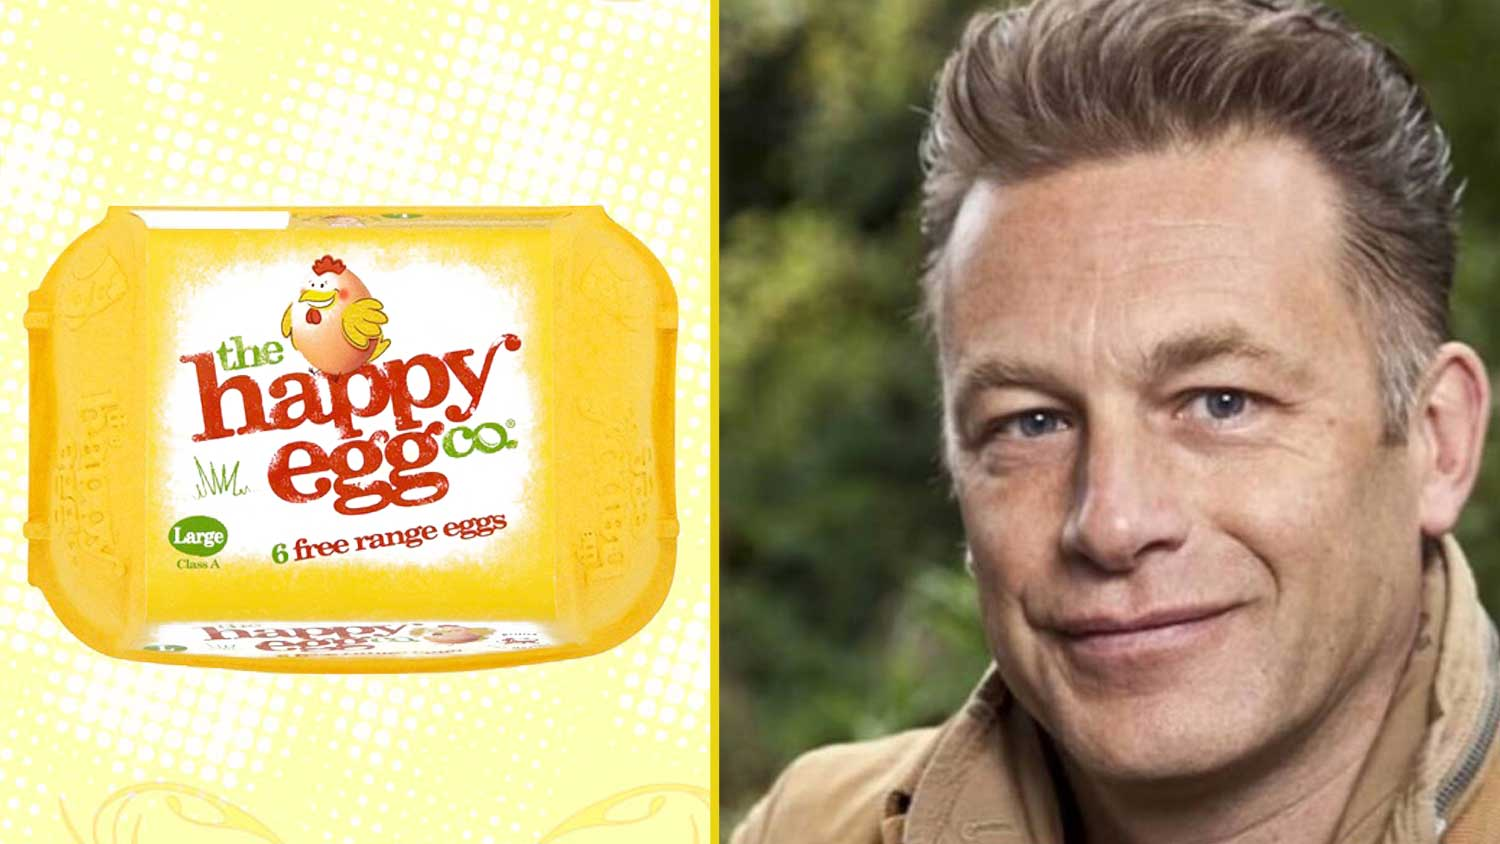 Egg Carton Labels Are Misleading, Says Chris Packham